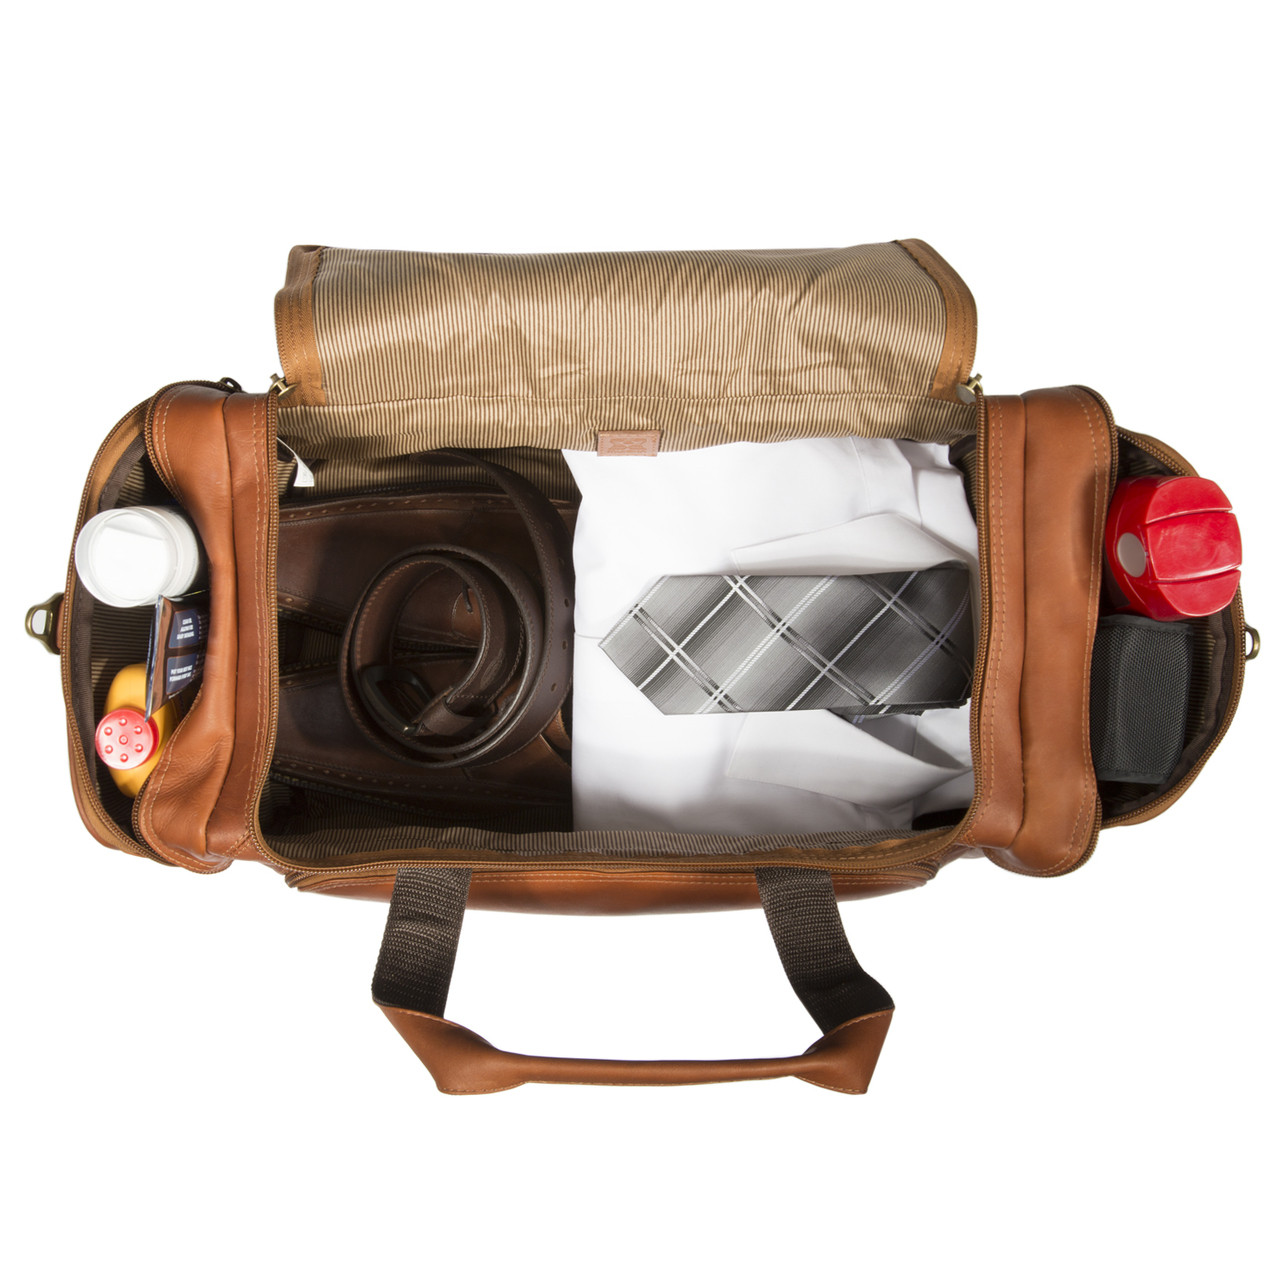 Muiska - Hugo - Leather U-shaped Duffel Bag features a spacious main compartment with fabric lining